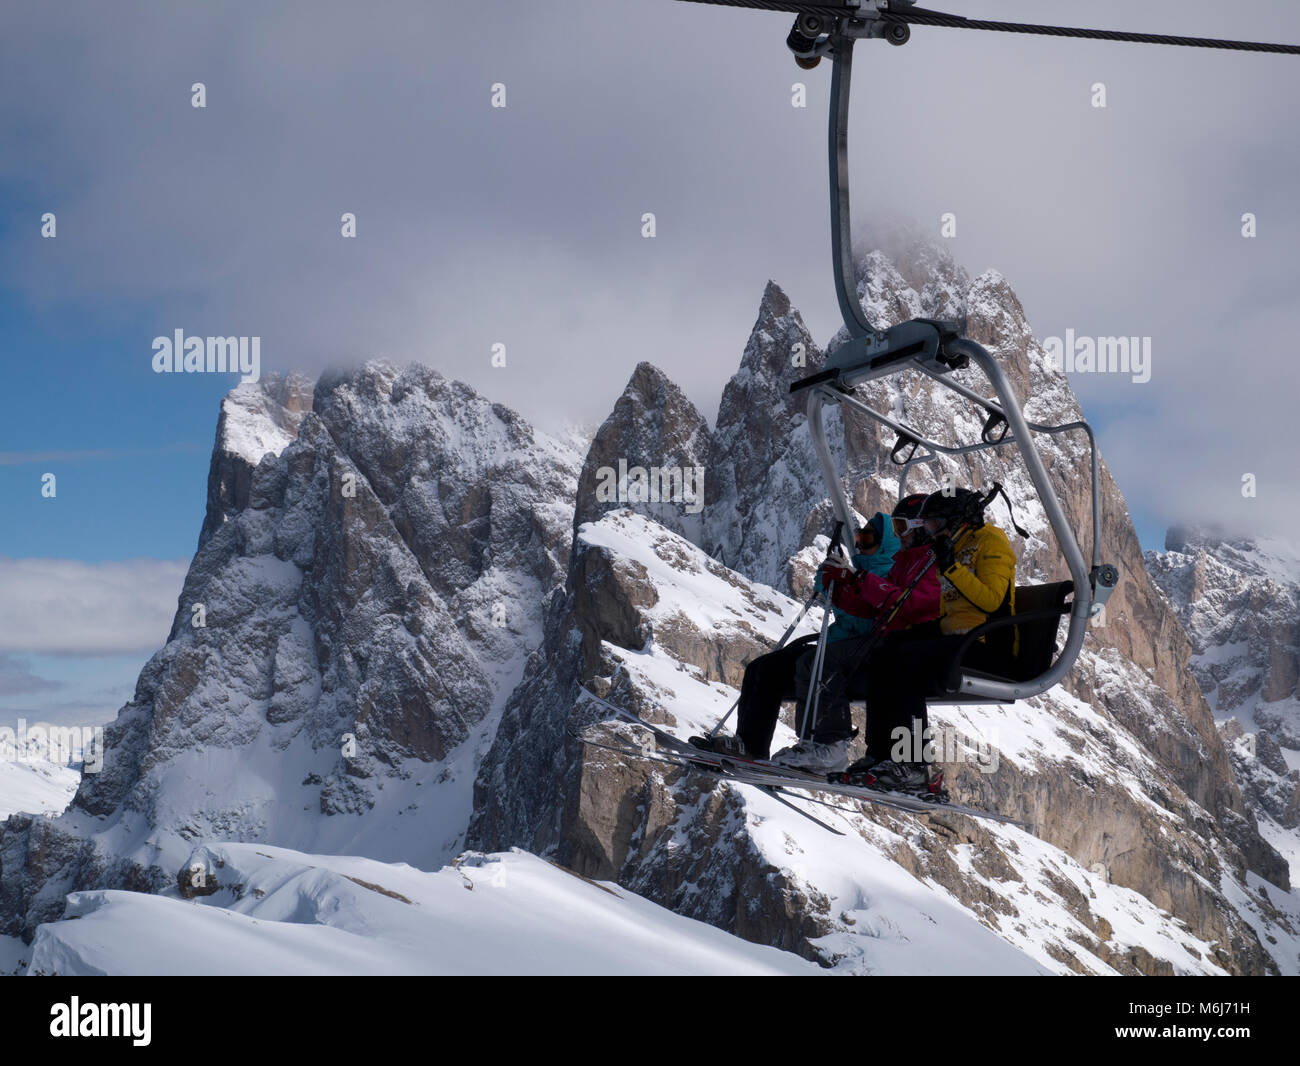 Chairlift in Italian Dolomites - Stock Image